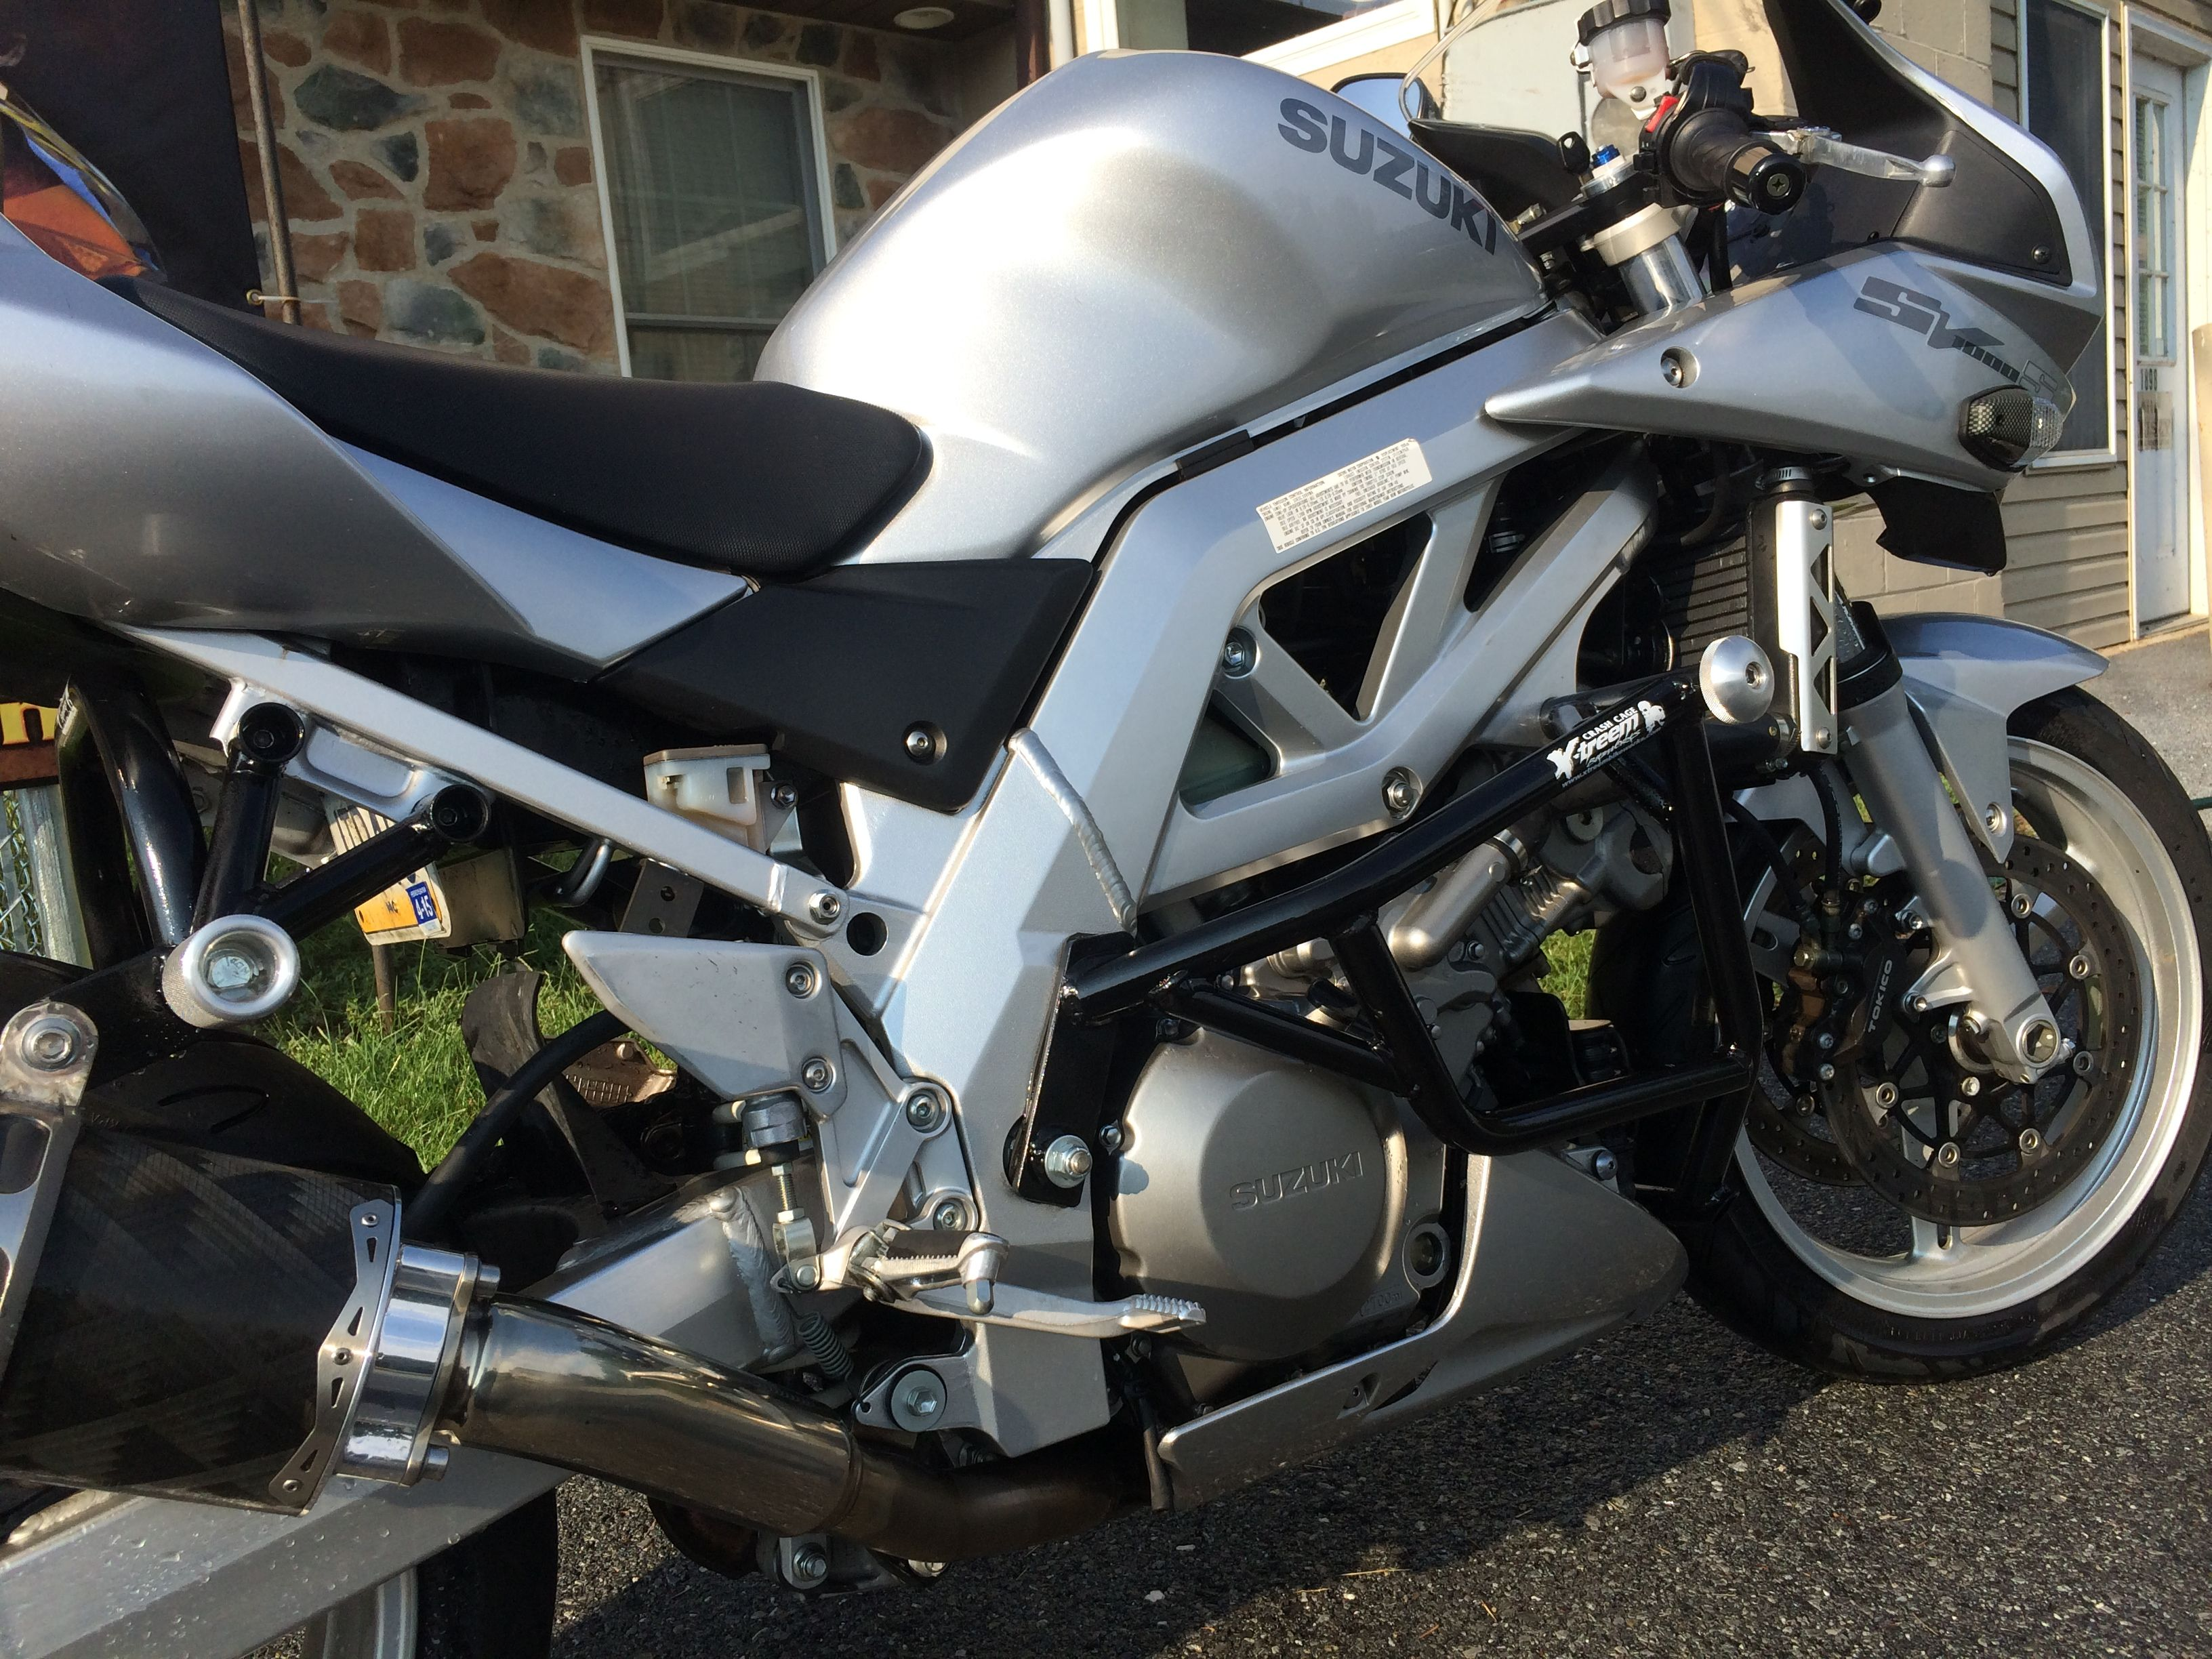 Suzuki sv1000 some companys say is it worth it to cage the sv650 and sv1000 xtreembikeworks